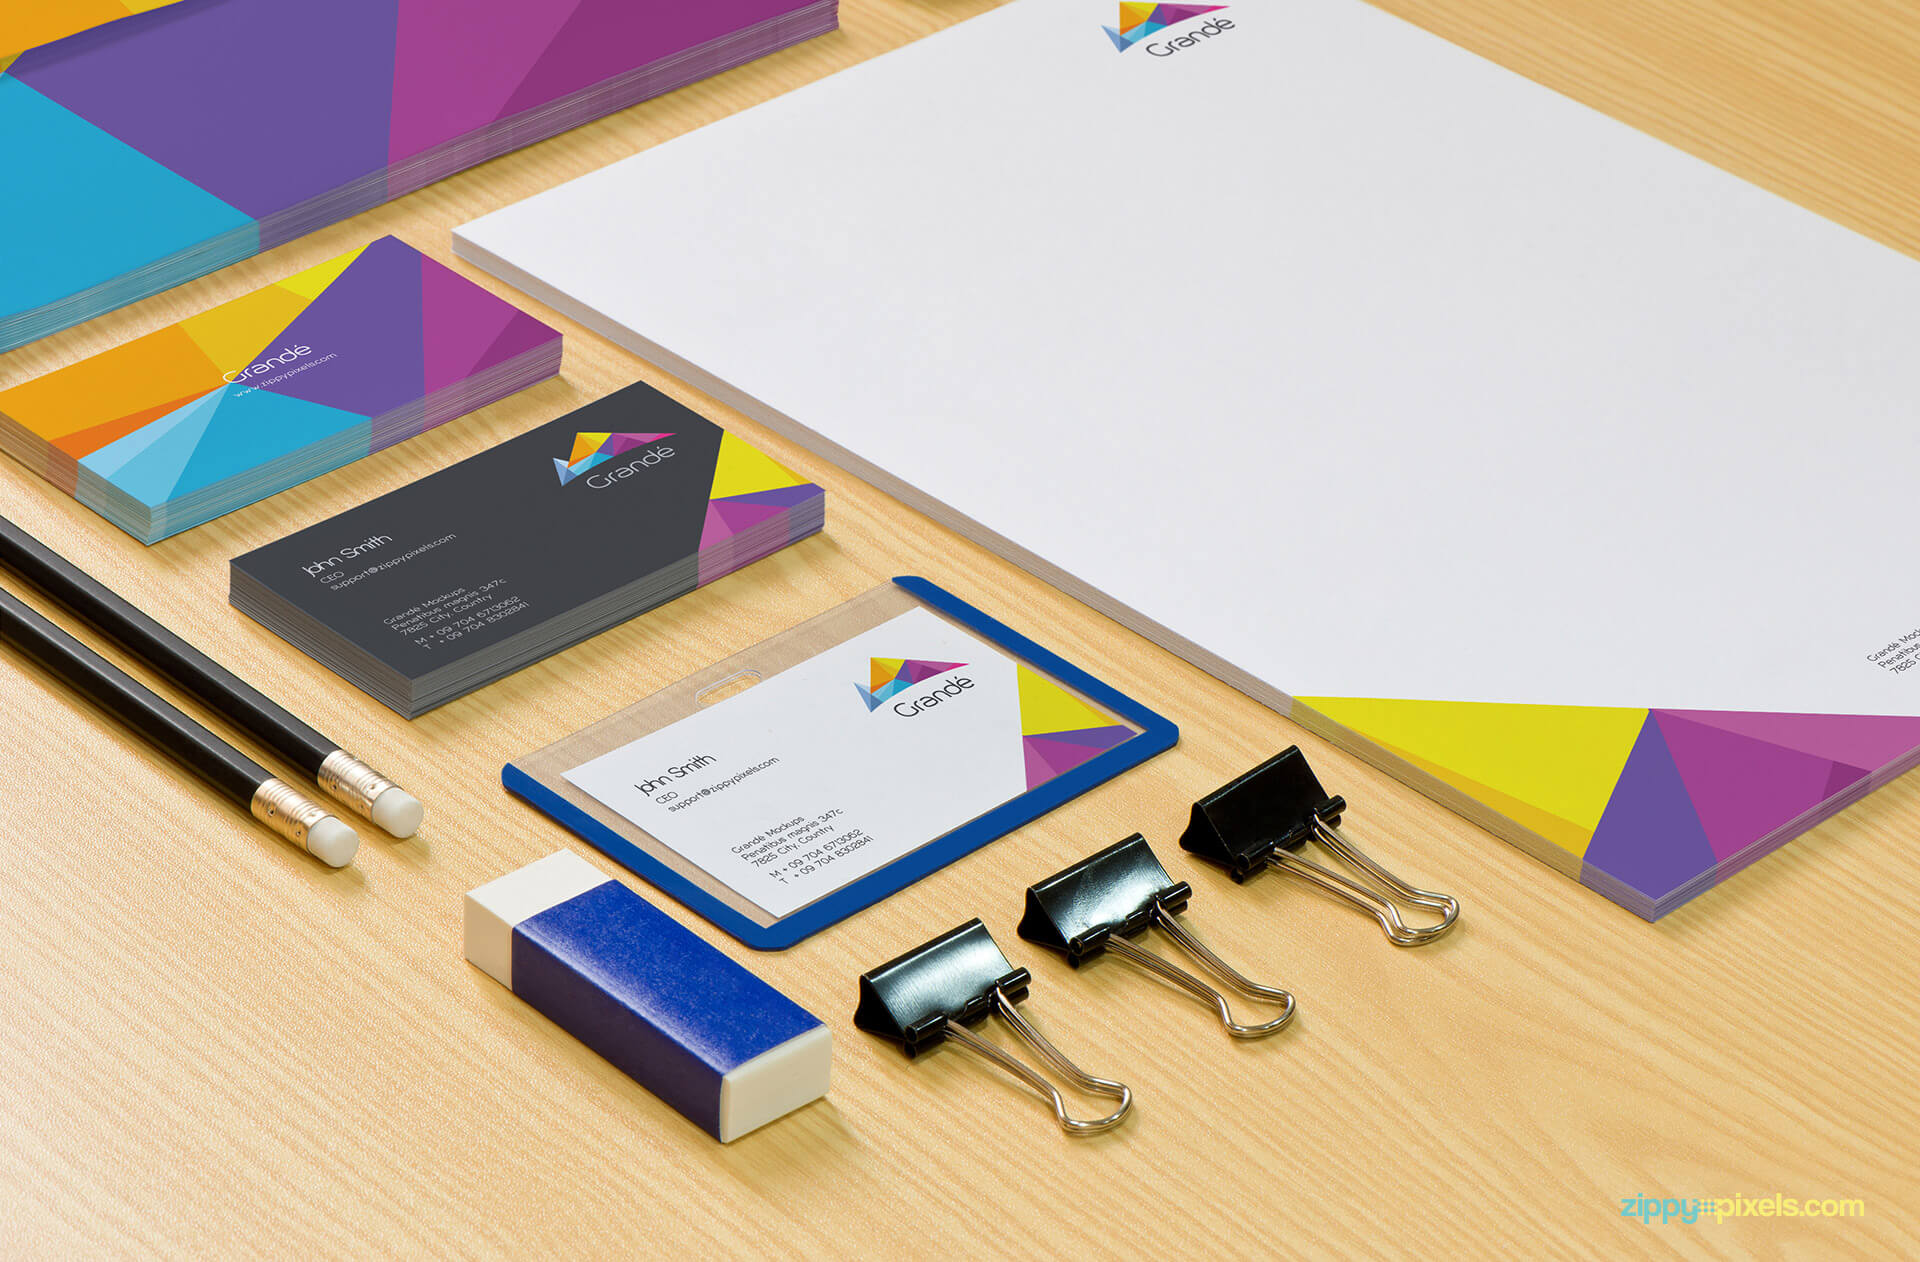 Branding Mockup of Stationery Items like Badge holder, Letterhead, Business Cards